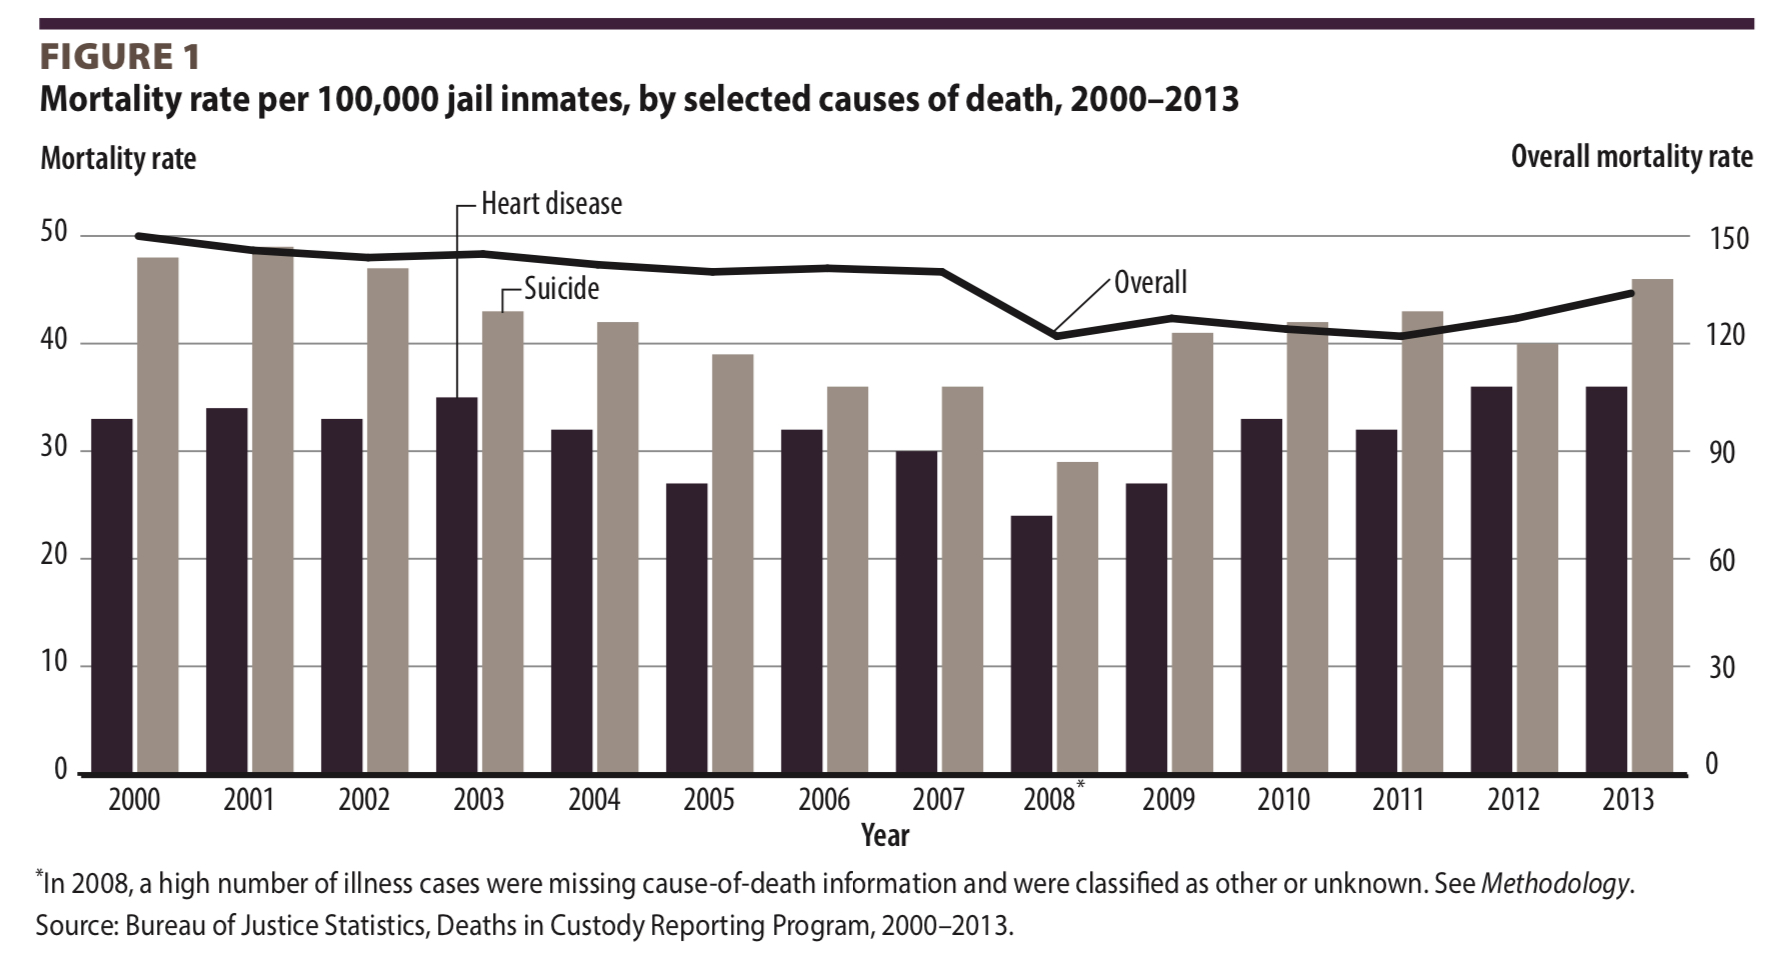 Mortality rate per 100,000 jail inmates, by selected causes of death, 2000-2013